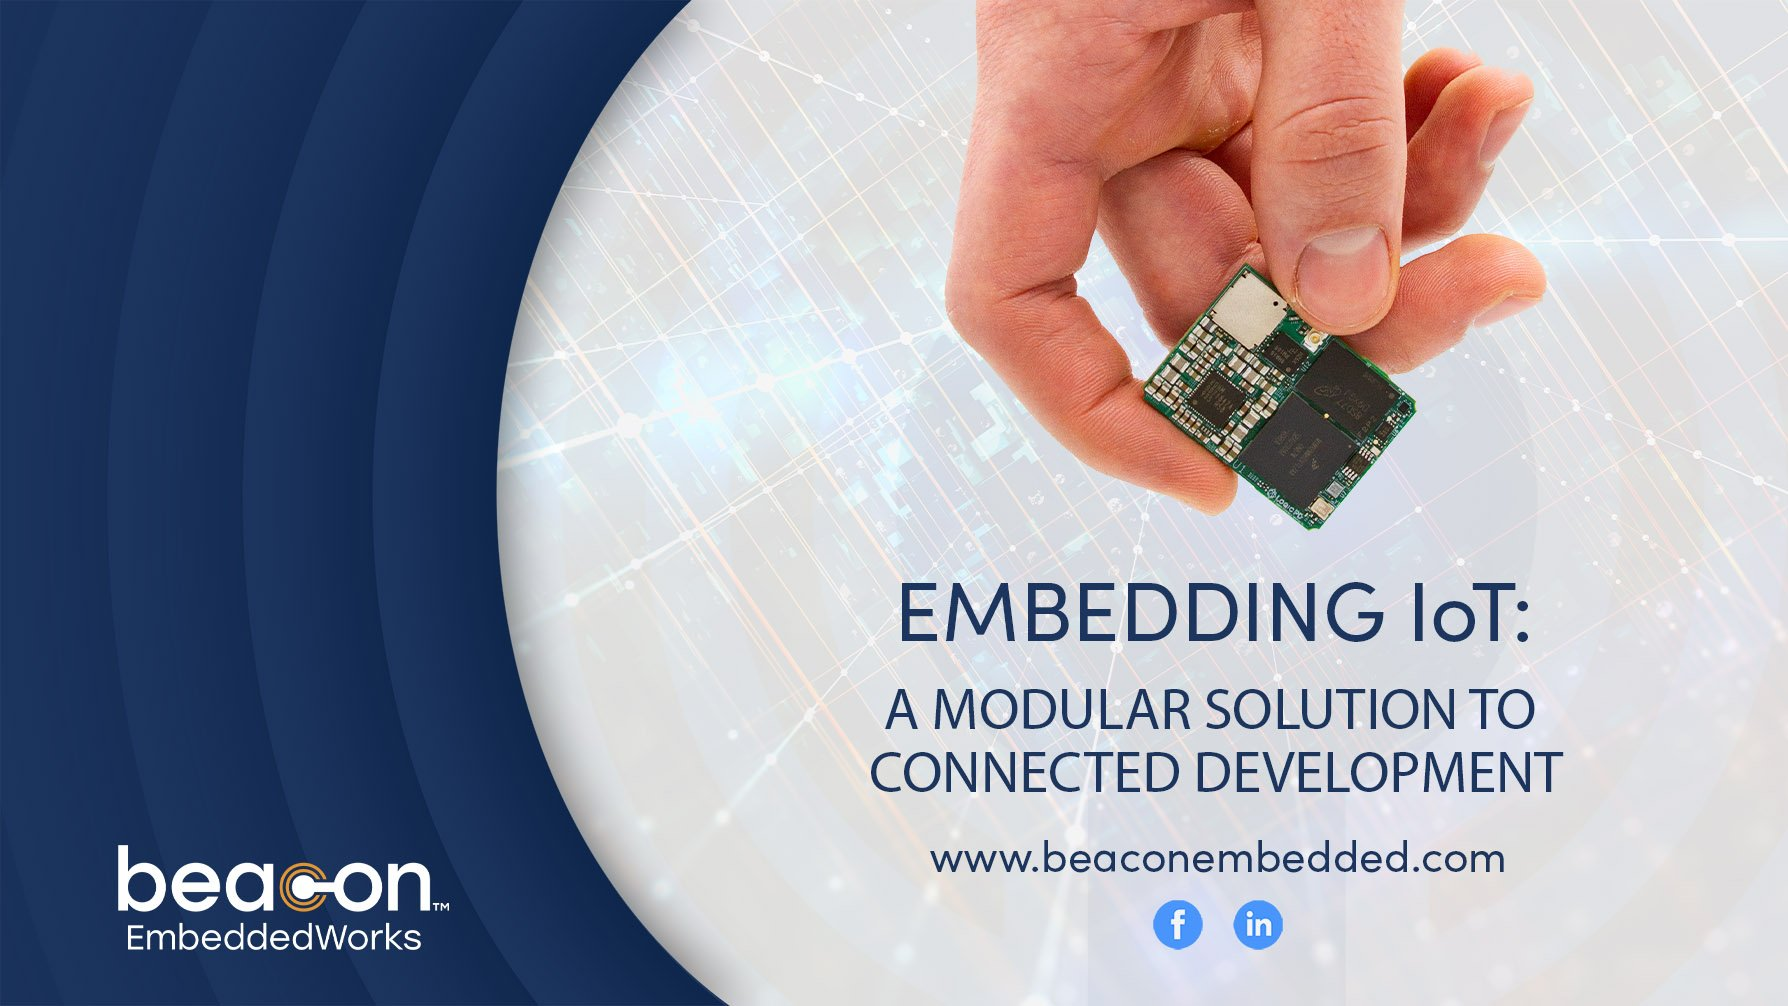 Embedding IoT: A Modular Solution to Connected Development